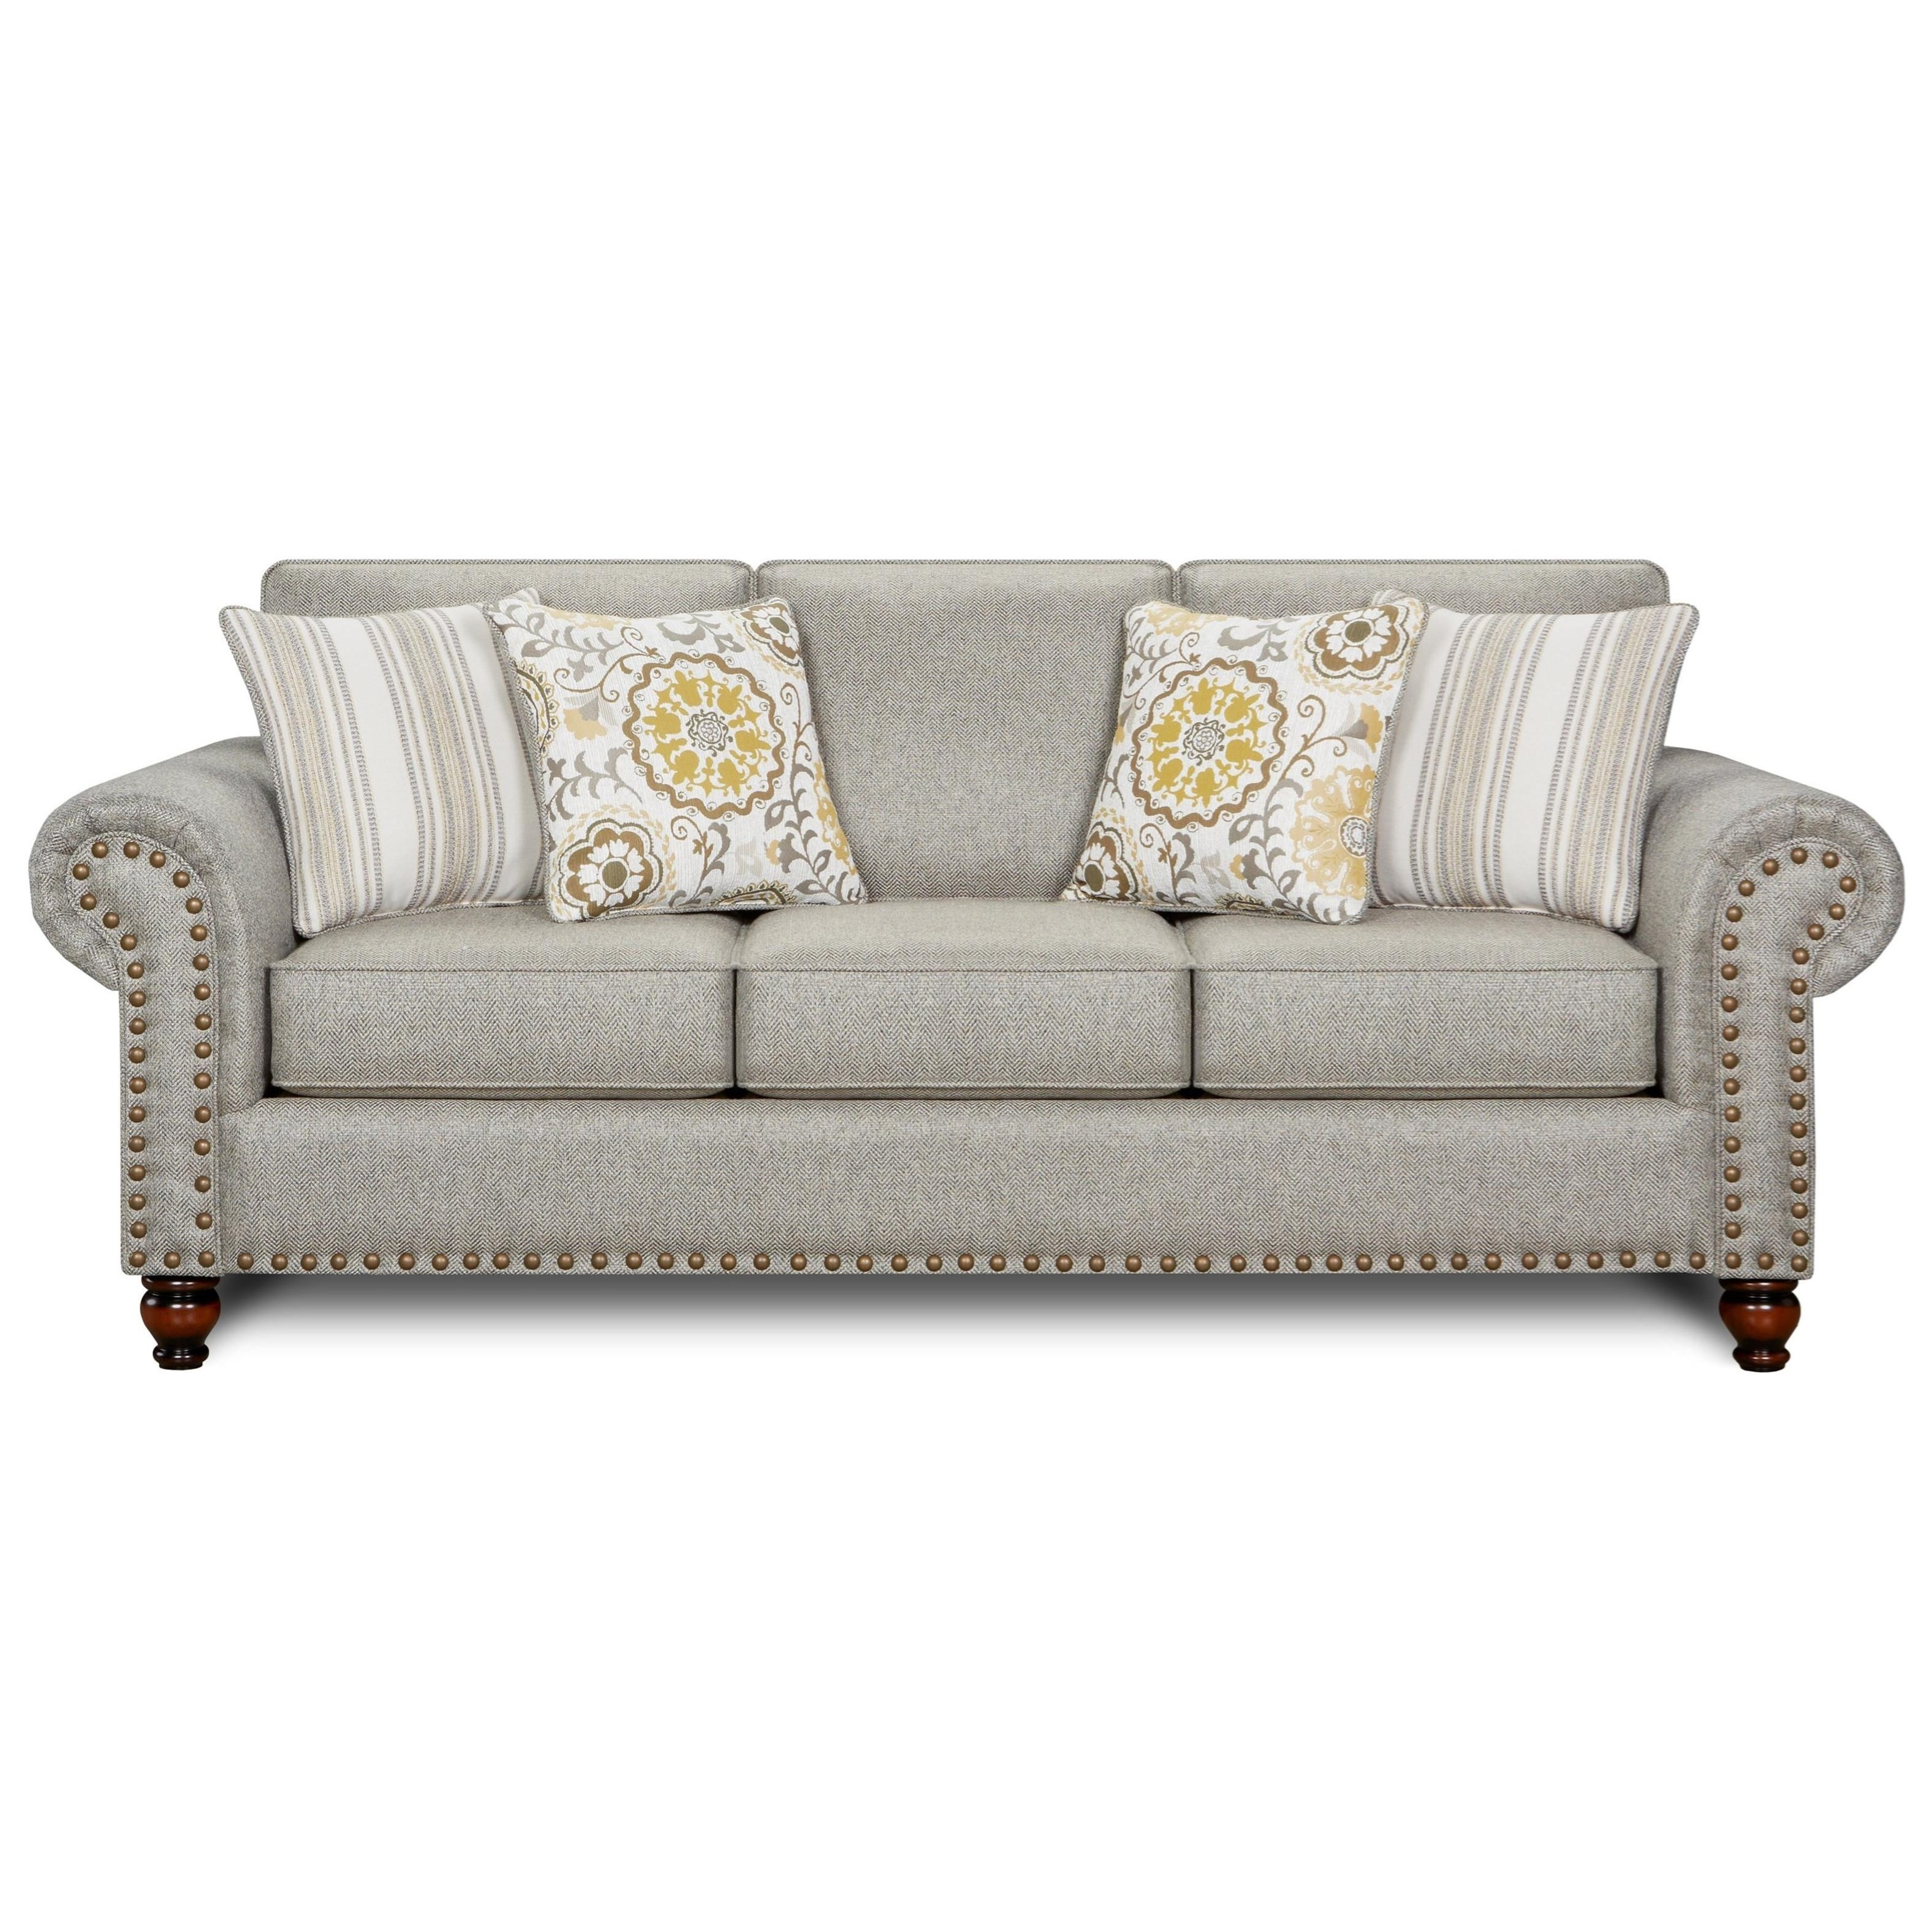 3110 Queen Sleeper Sofa by Fusion Furniture at Hudson's Furniture